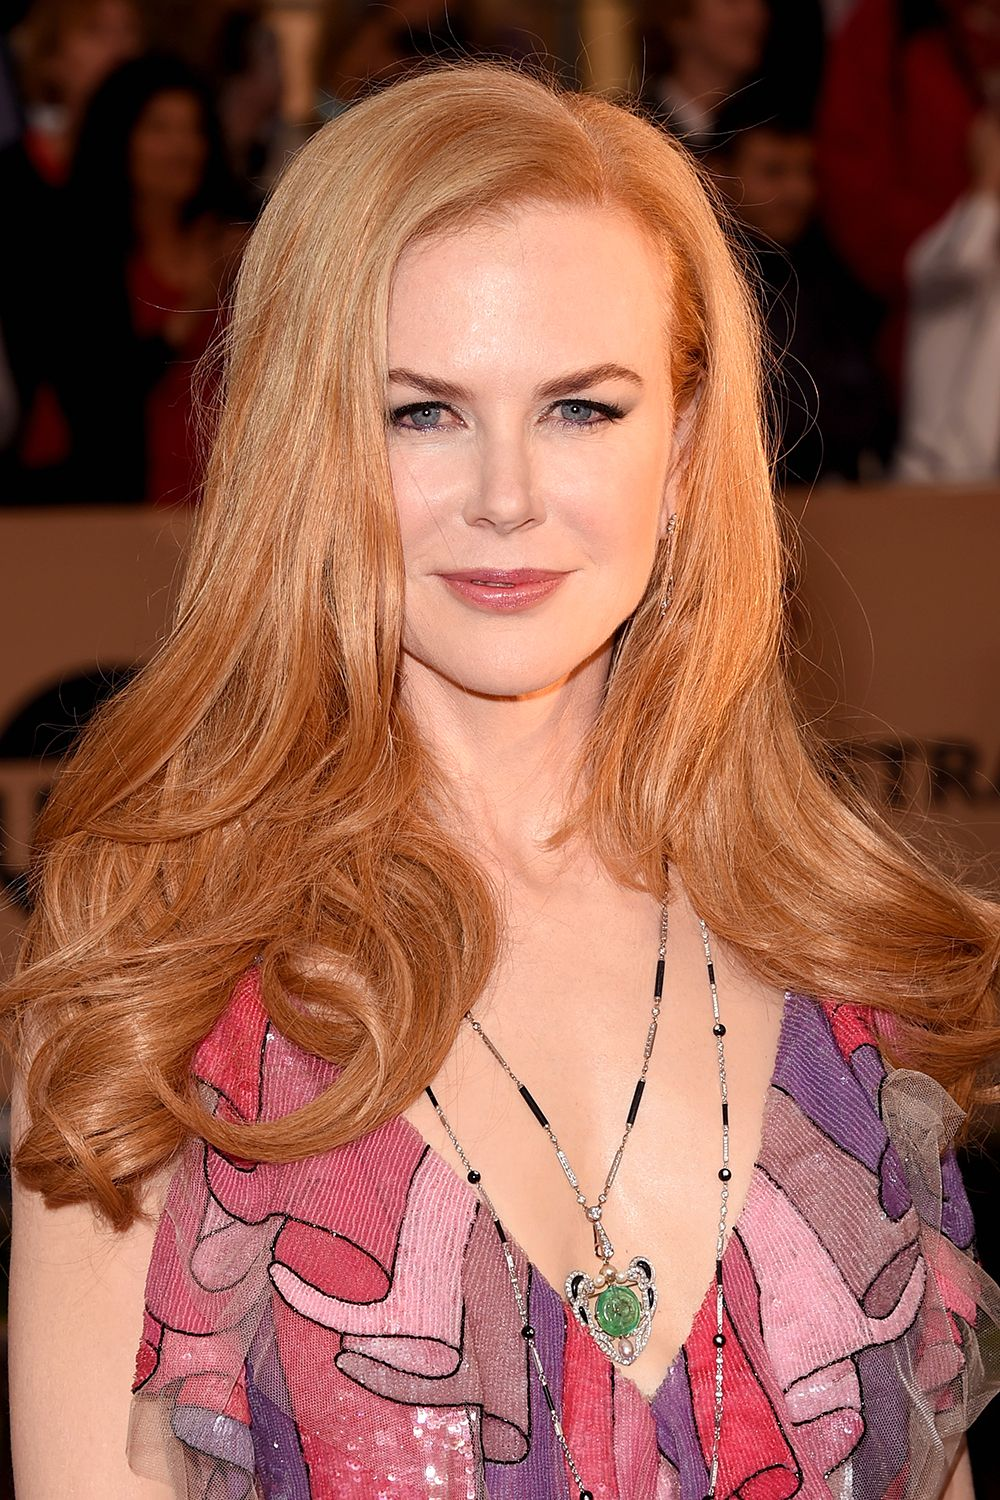 """Nicole Kidman """"I've tried a lot of things, but aside from sports and good nutrition, most things don't make a difference,"""" Kidman tells TV Movie . """"I have also tried botox. I didn't like how my face looked afterwards. Now I don't use it anymore–I can move my forehead again!"""""""